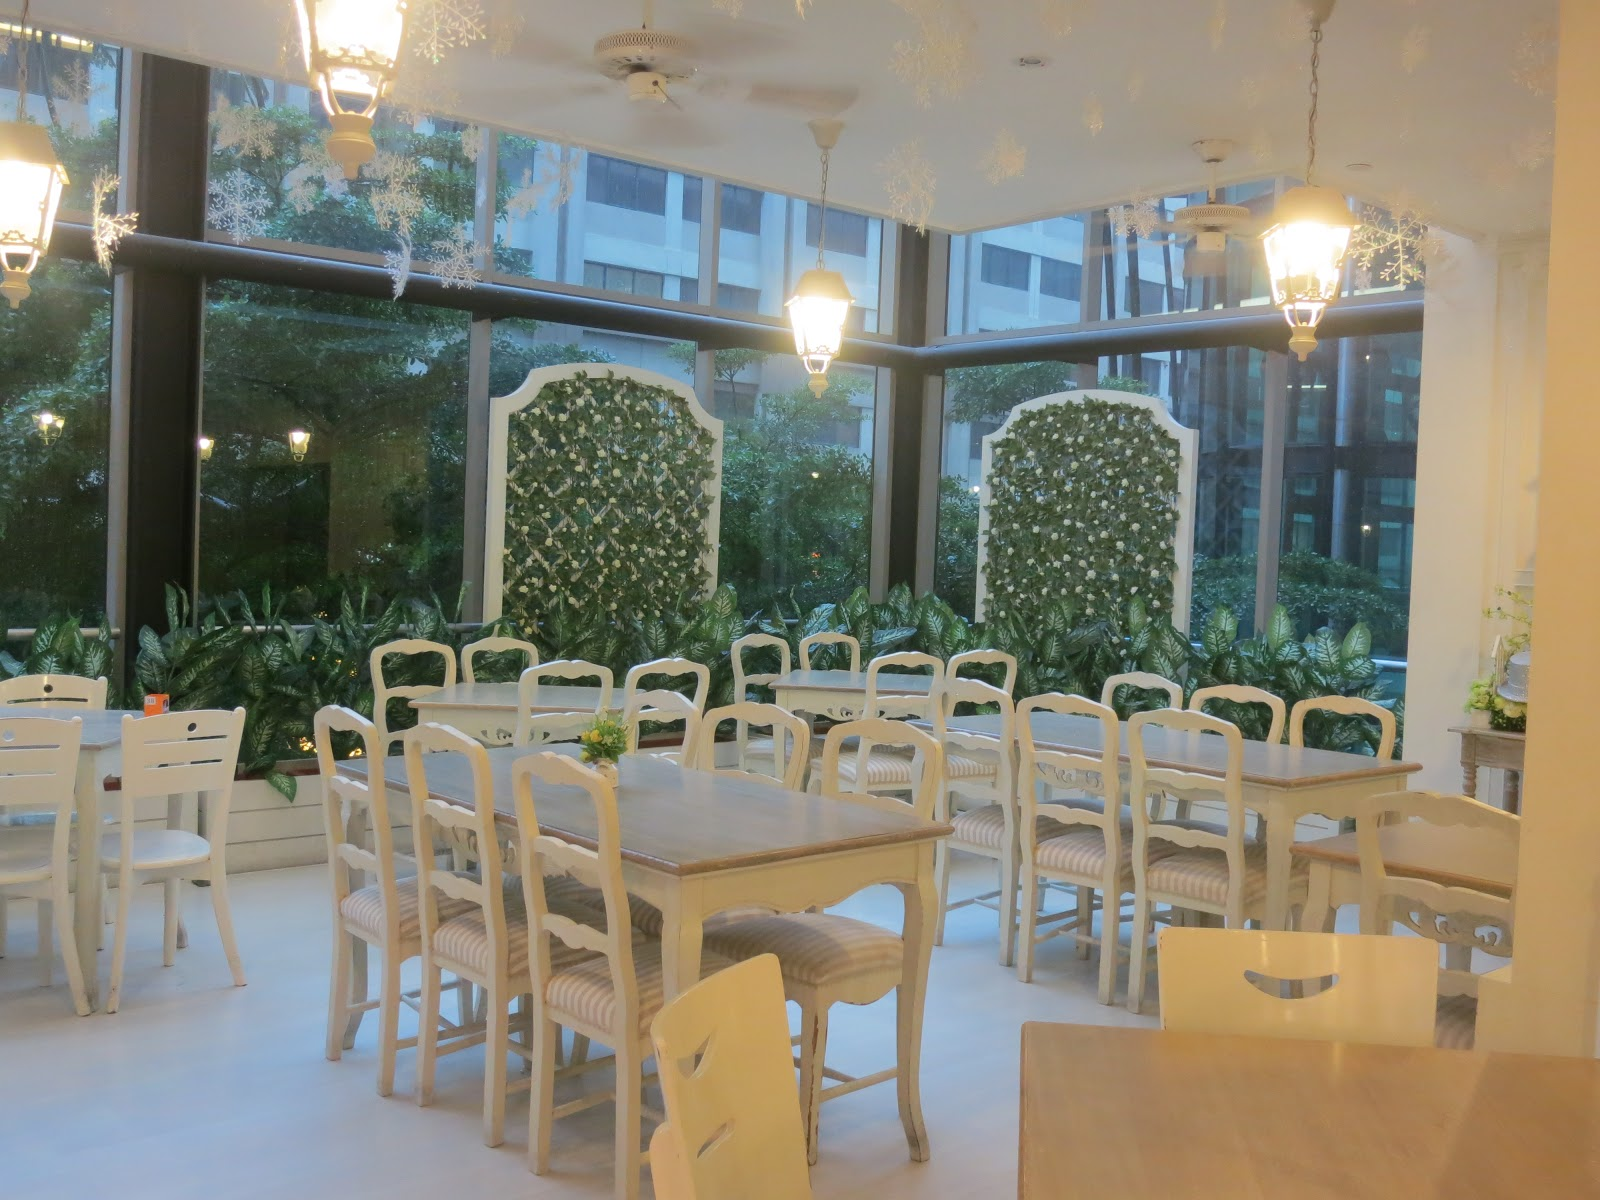 The Kitchen Garden Cafe Garden Cafe In Mid Valley Cute Just Doesnt Cut It You Had Your